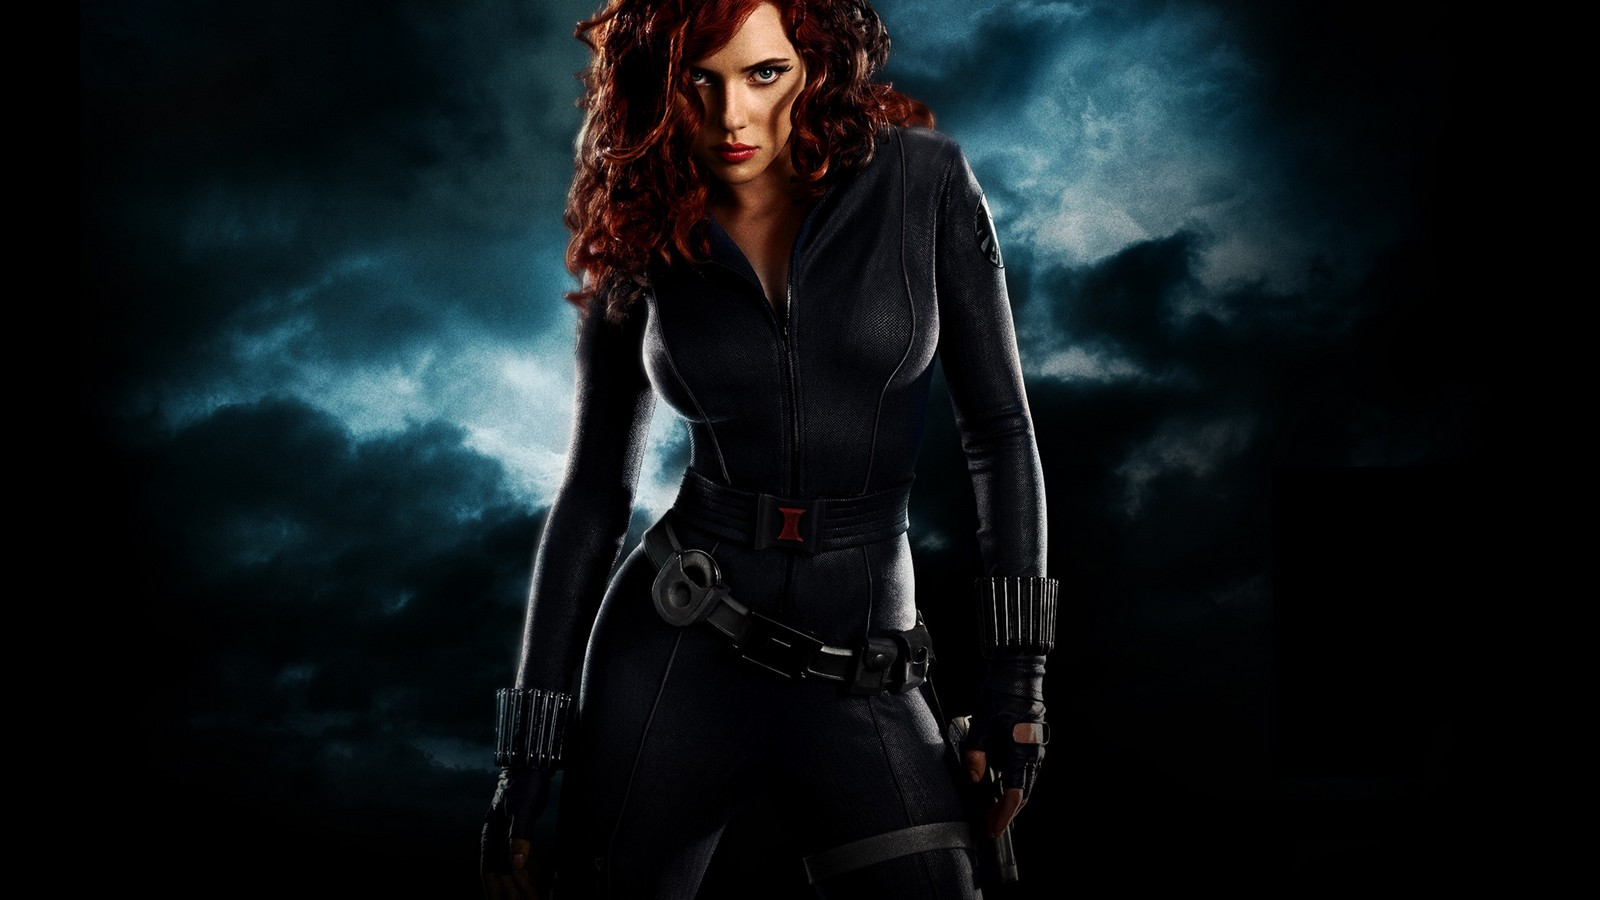 natasha romanoff black widow wallpapers - Images Featuring Black Widow Natasha Romanoff (MAA